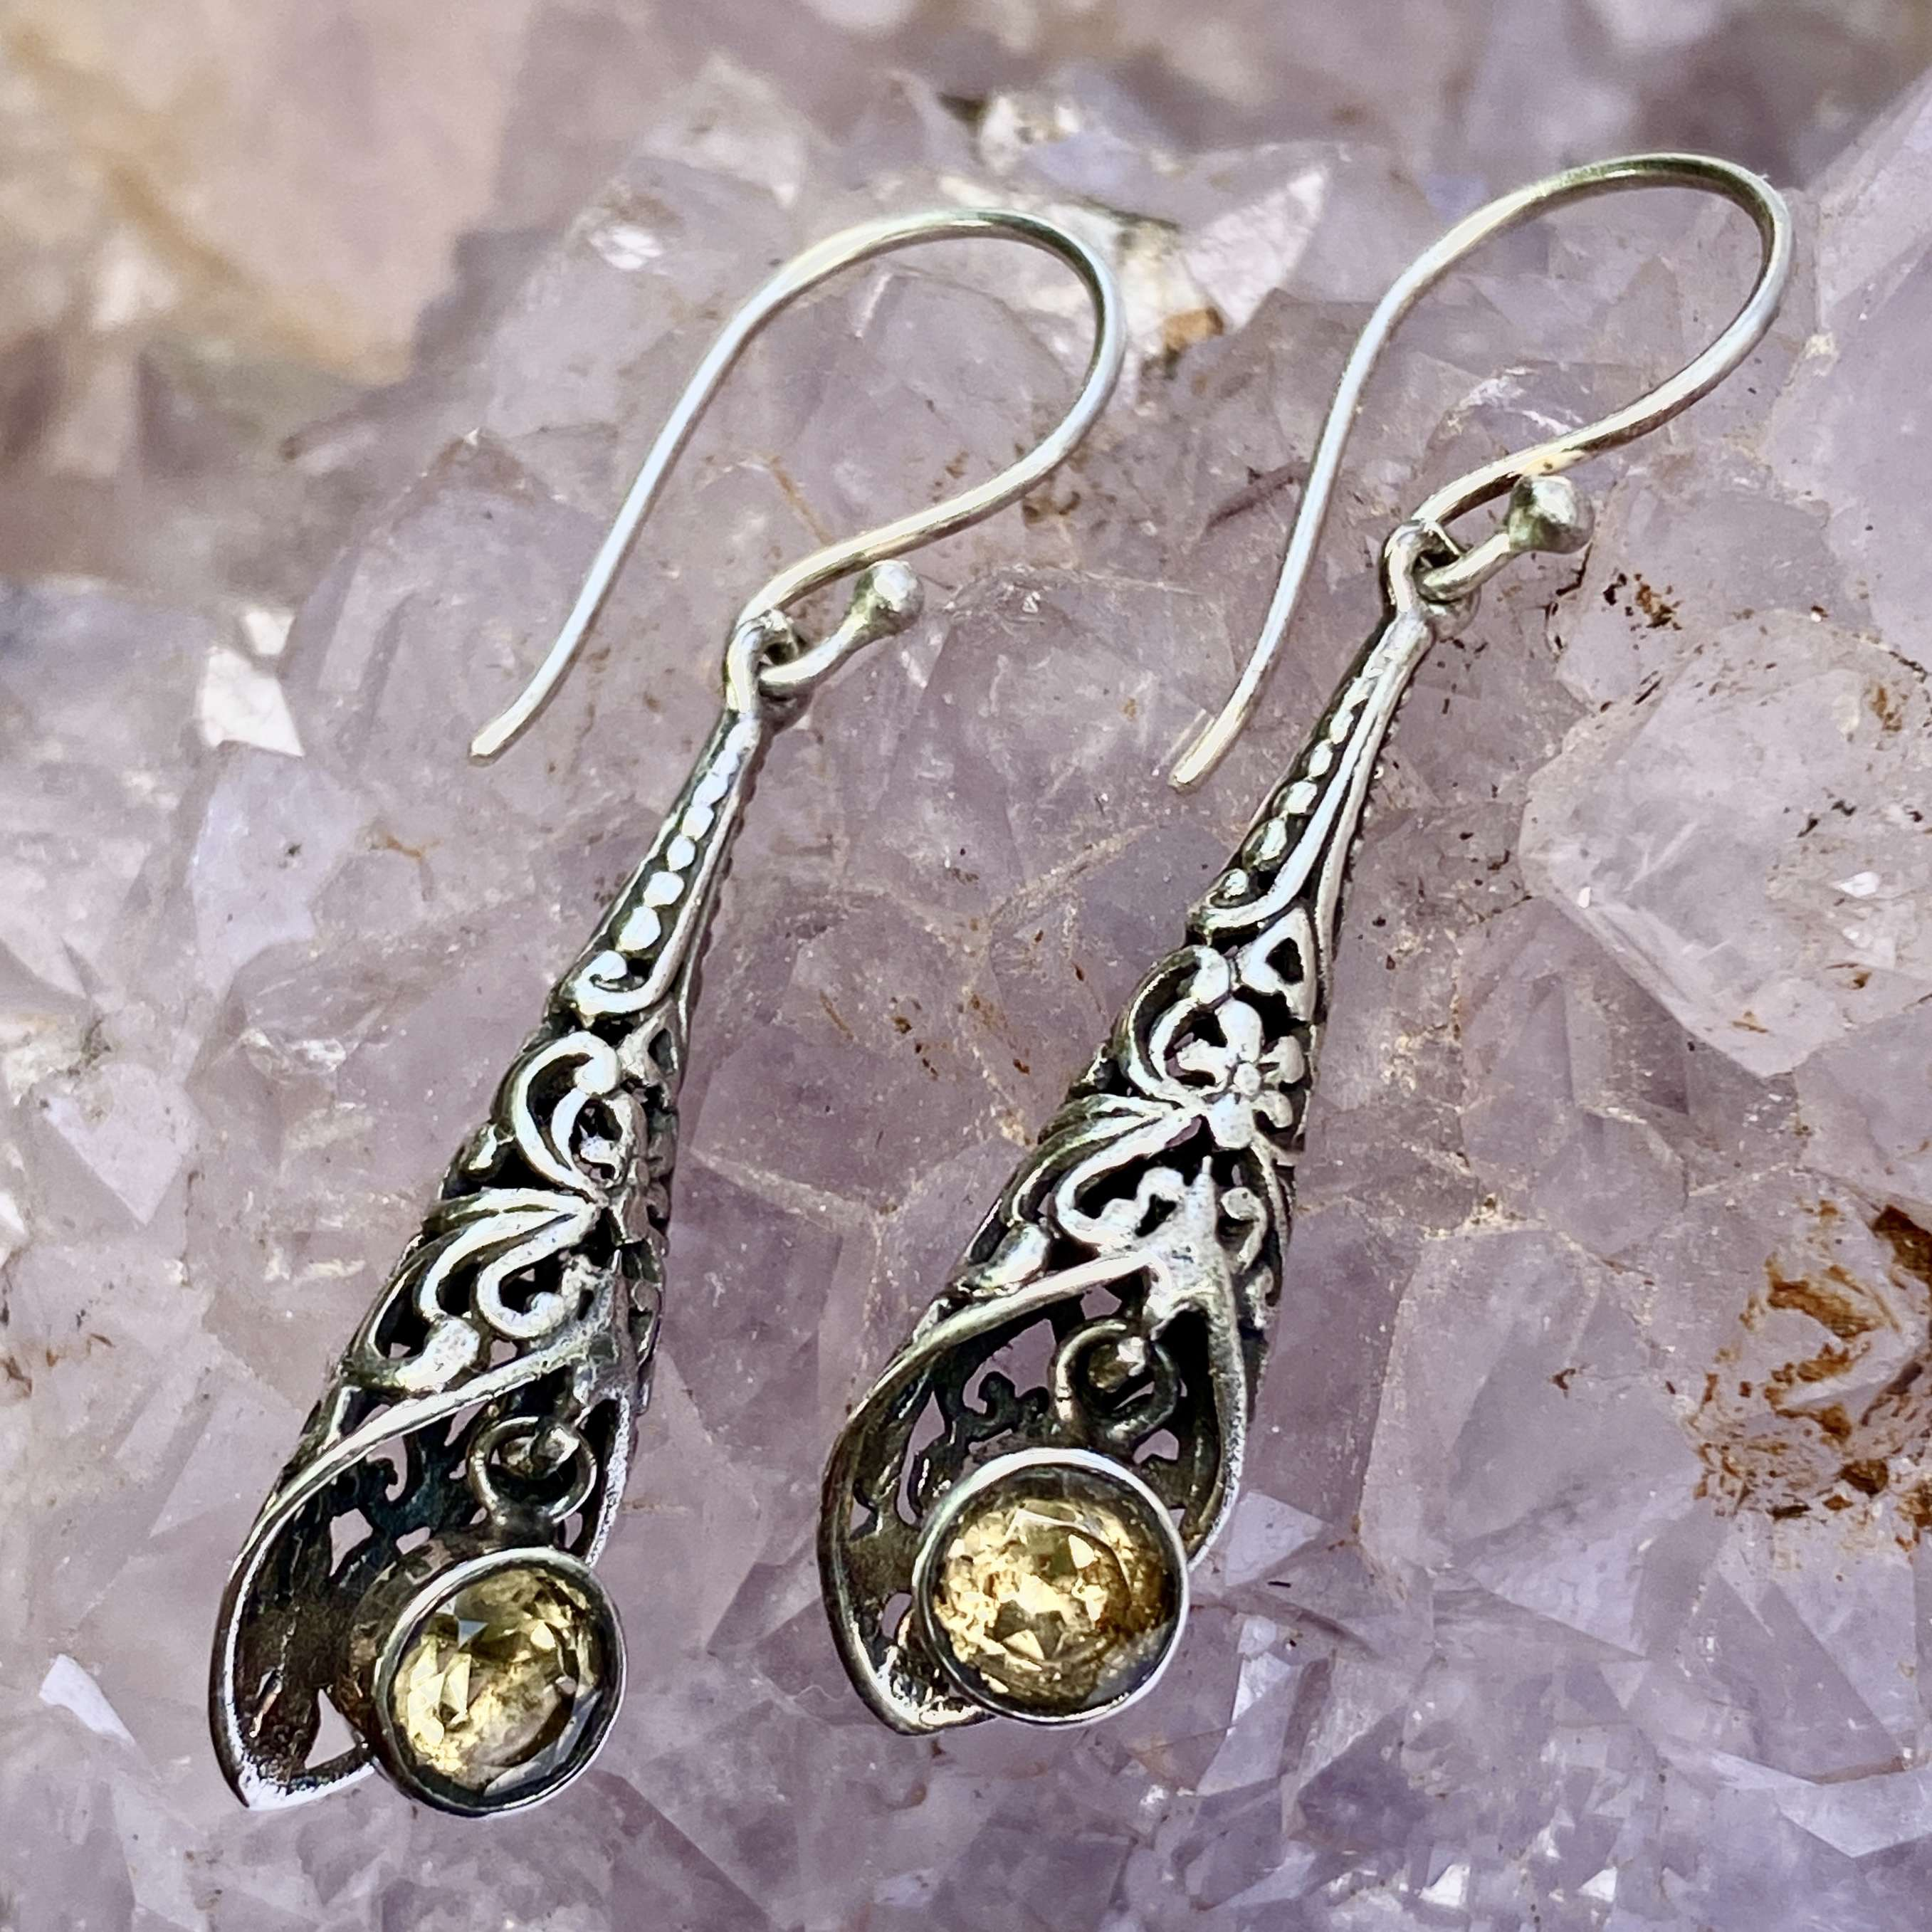 (HANDMADE 925 BALI SILVER FILIGREE EARRINGS WITH CITRINE)